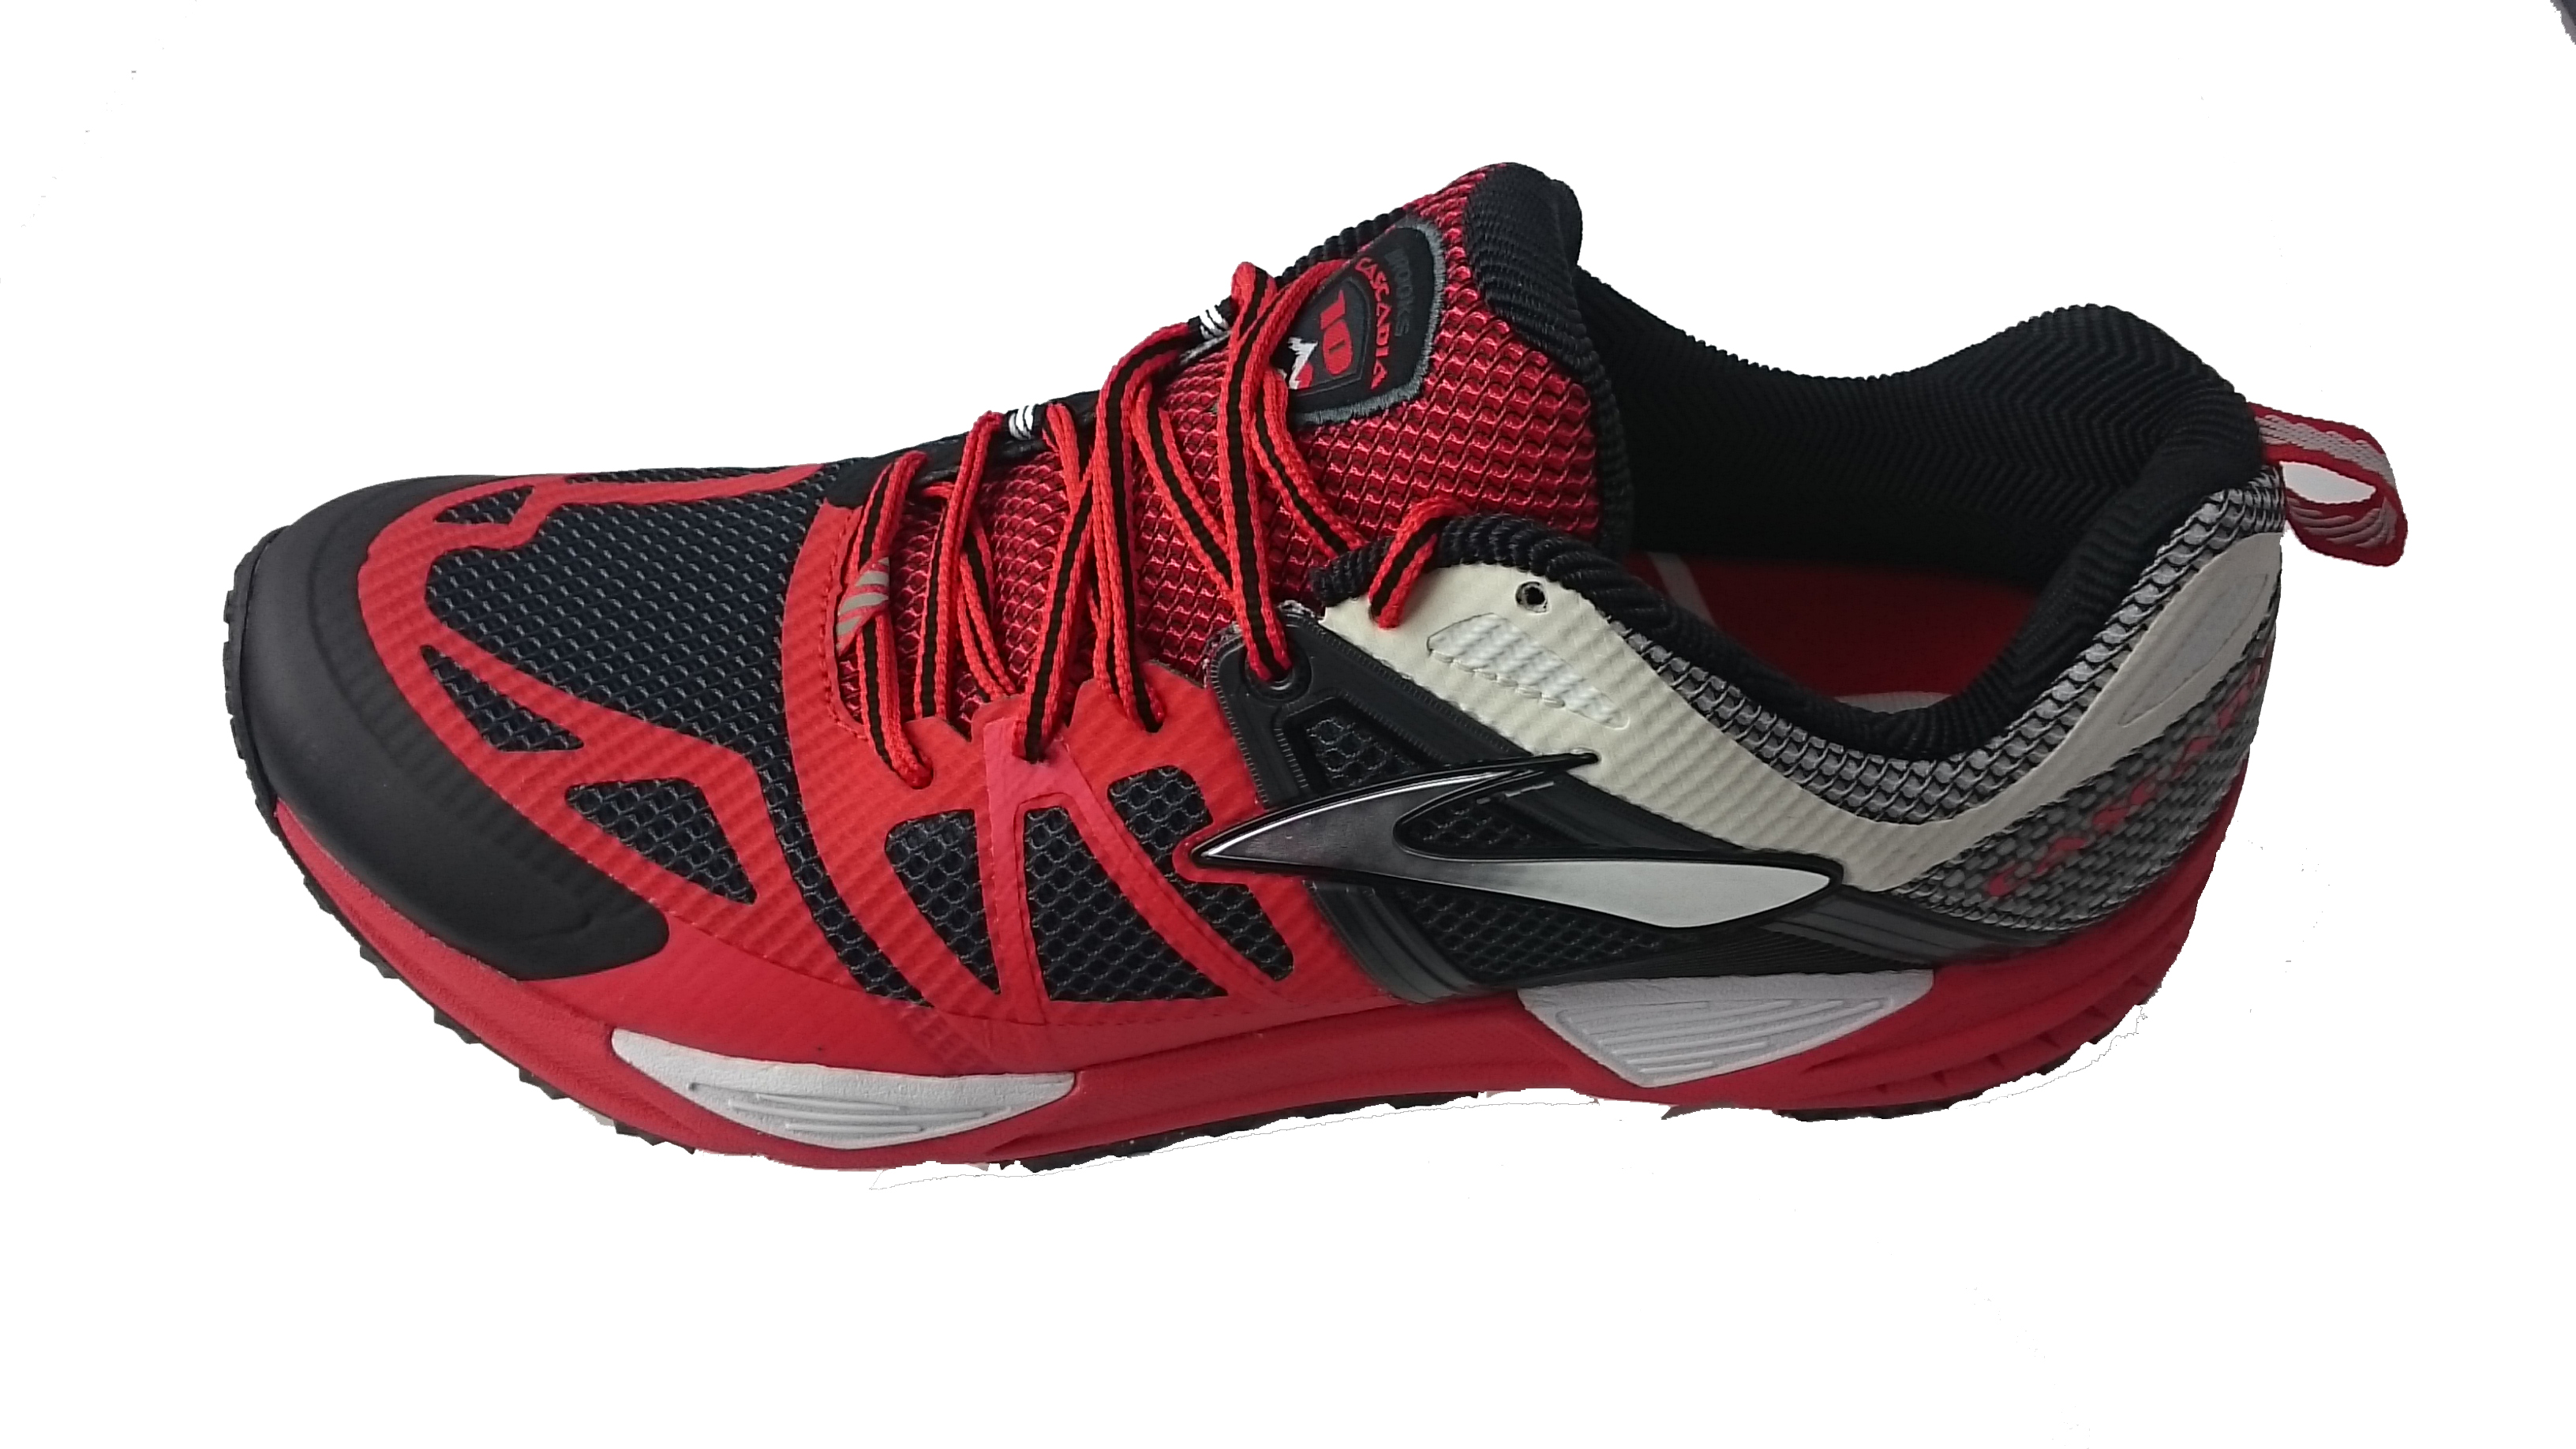 brooks cascadia rot 2 -carboo-shop.de - http://www.carboo-shop.de/index.php?route=product/product&product_id=985&search=trail